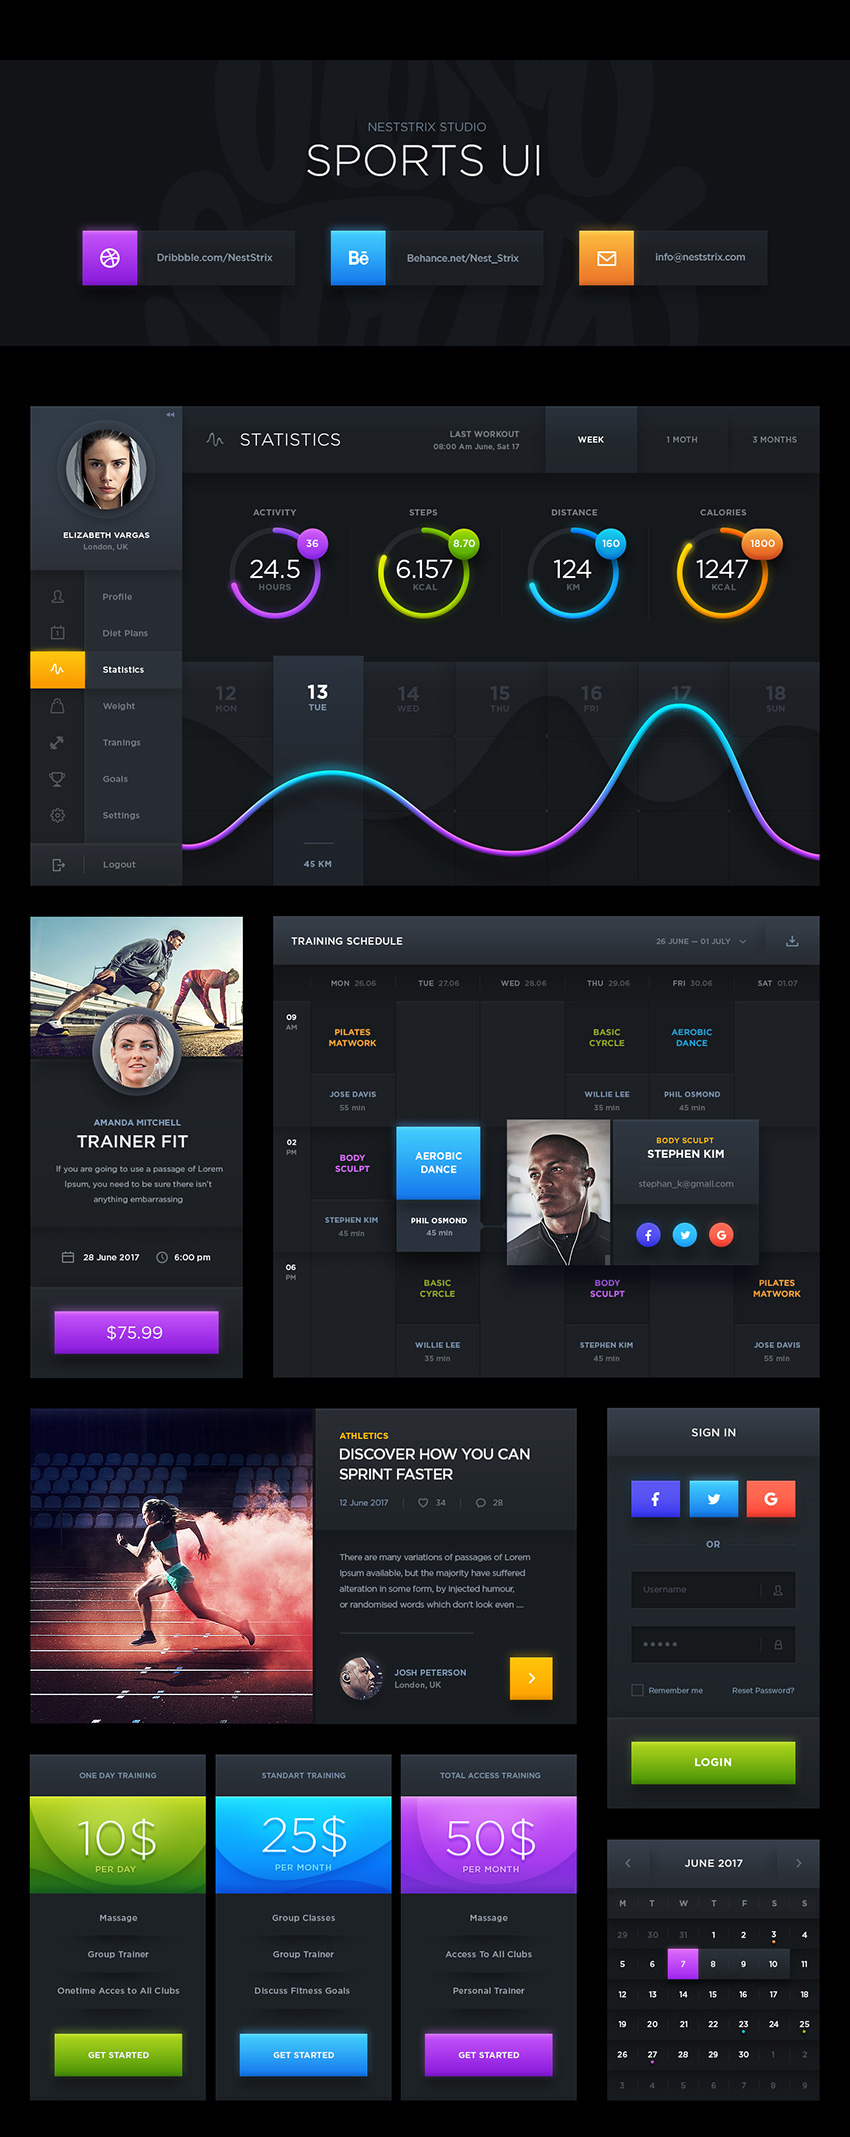 Dark Sports Free UI Kit for Photoshop designers